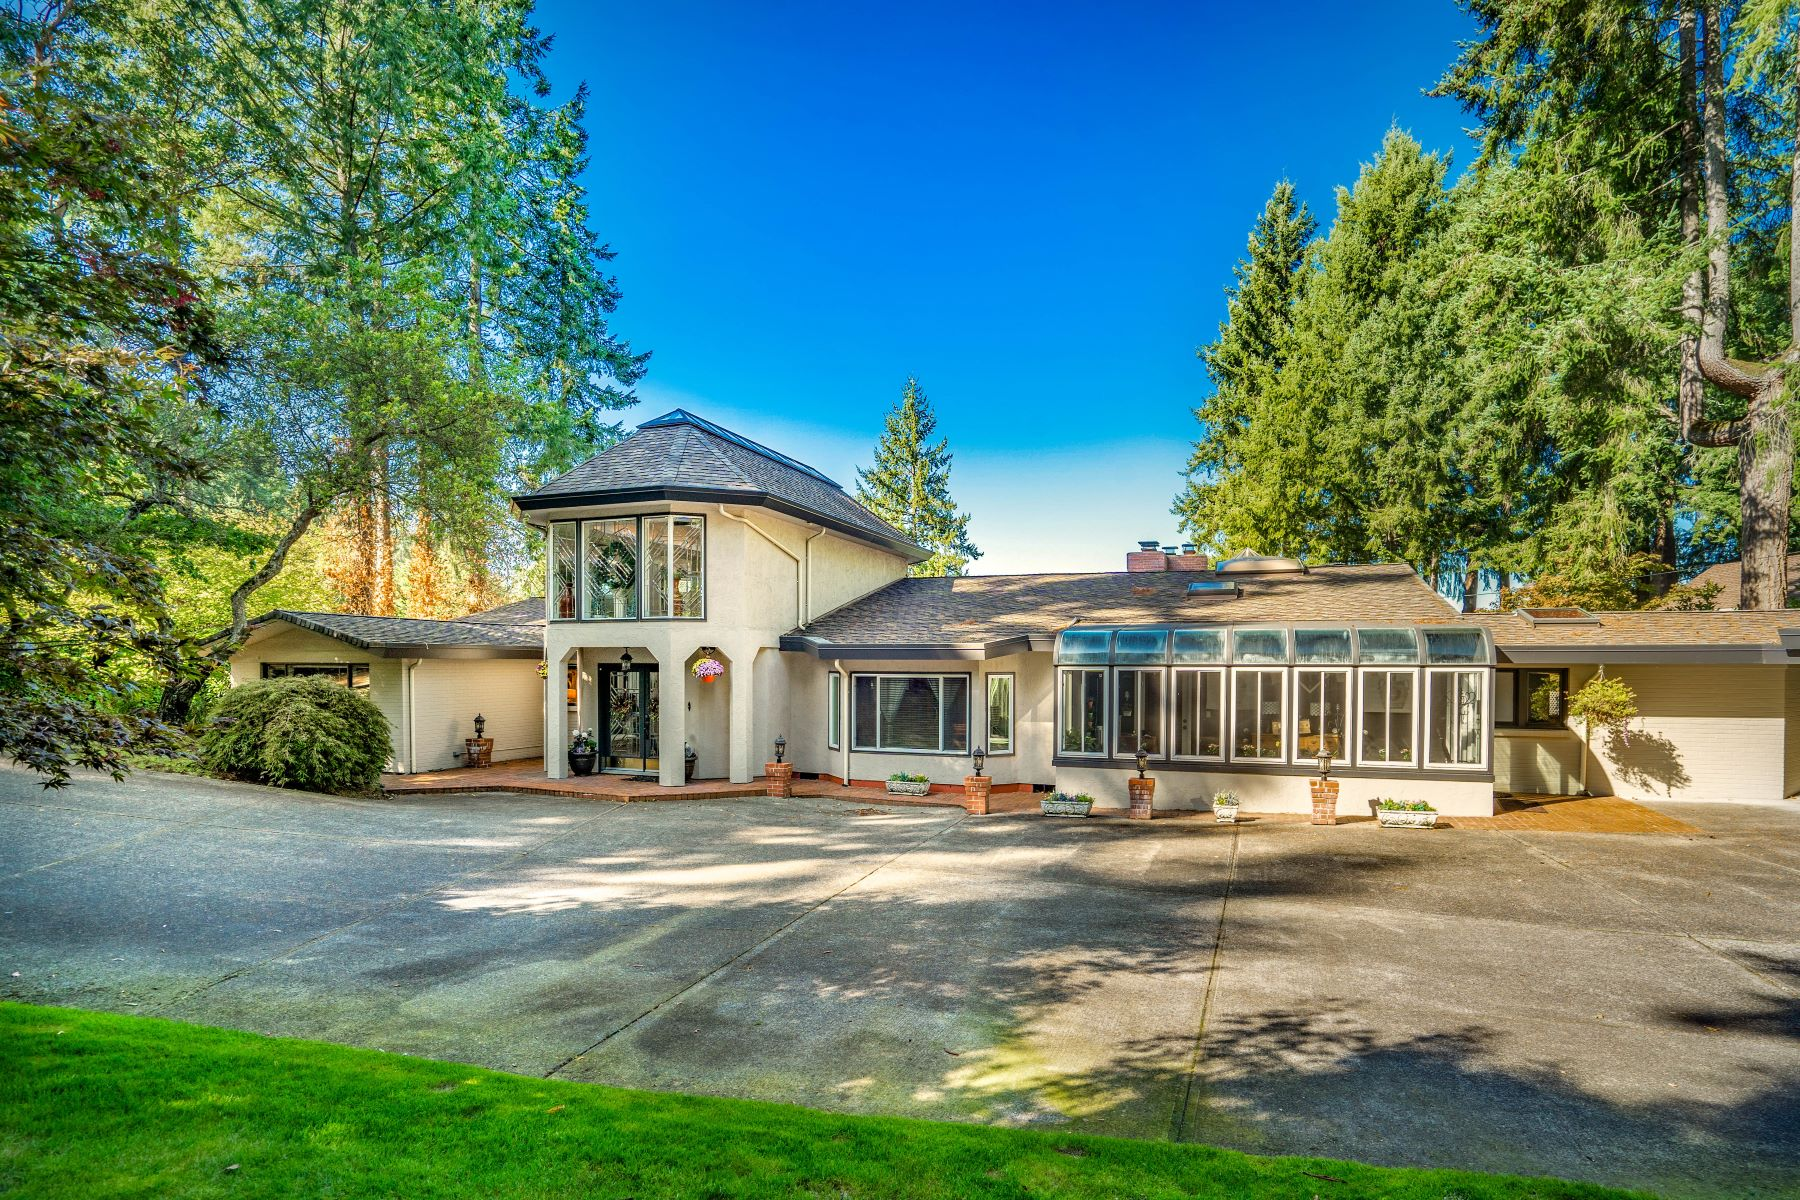 Single Family Homes for Sale at TheVillaDelLago.com 12785 Gravelly lake Dr SW Lakewood, Washington 98499 United States